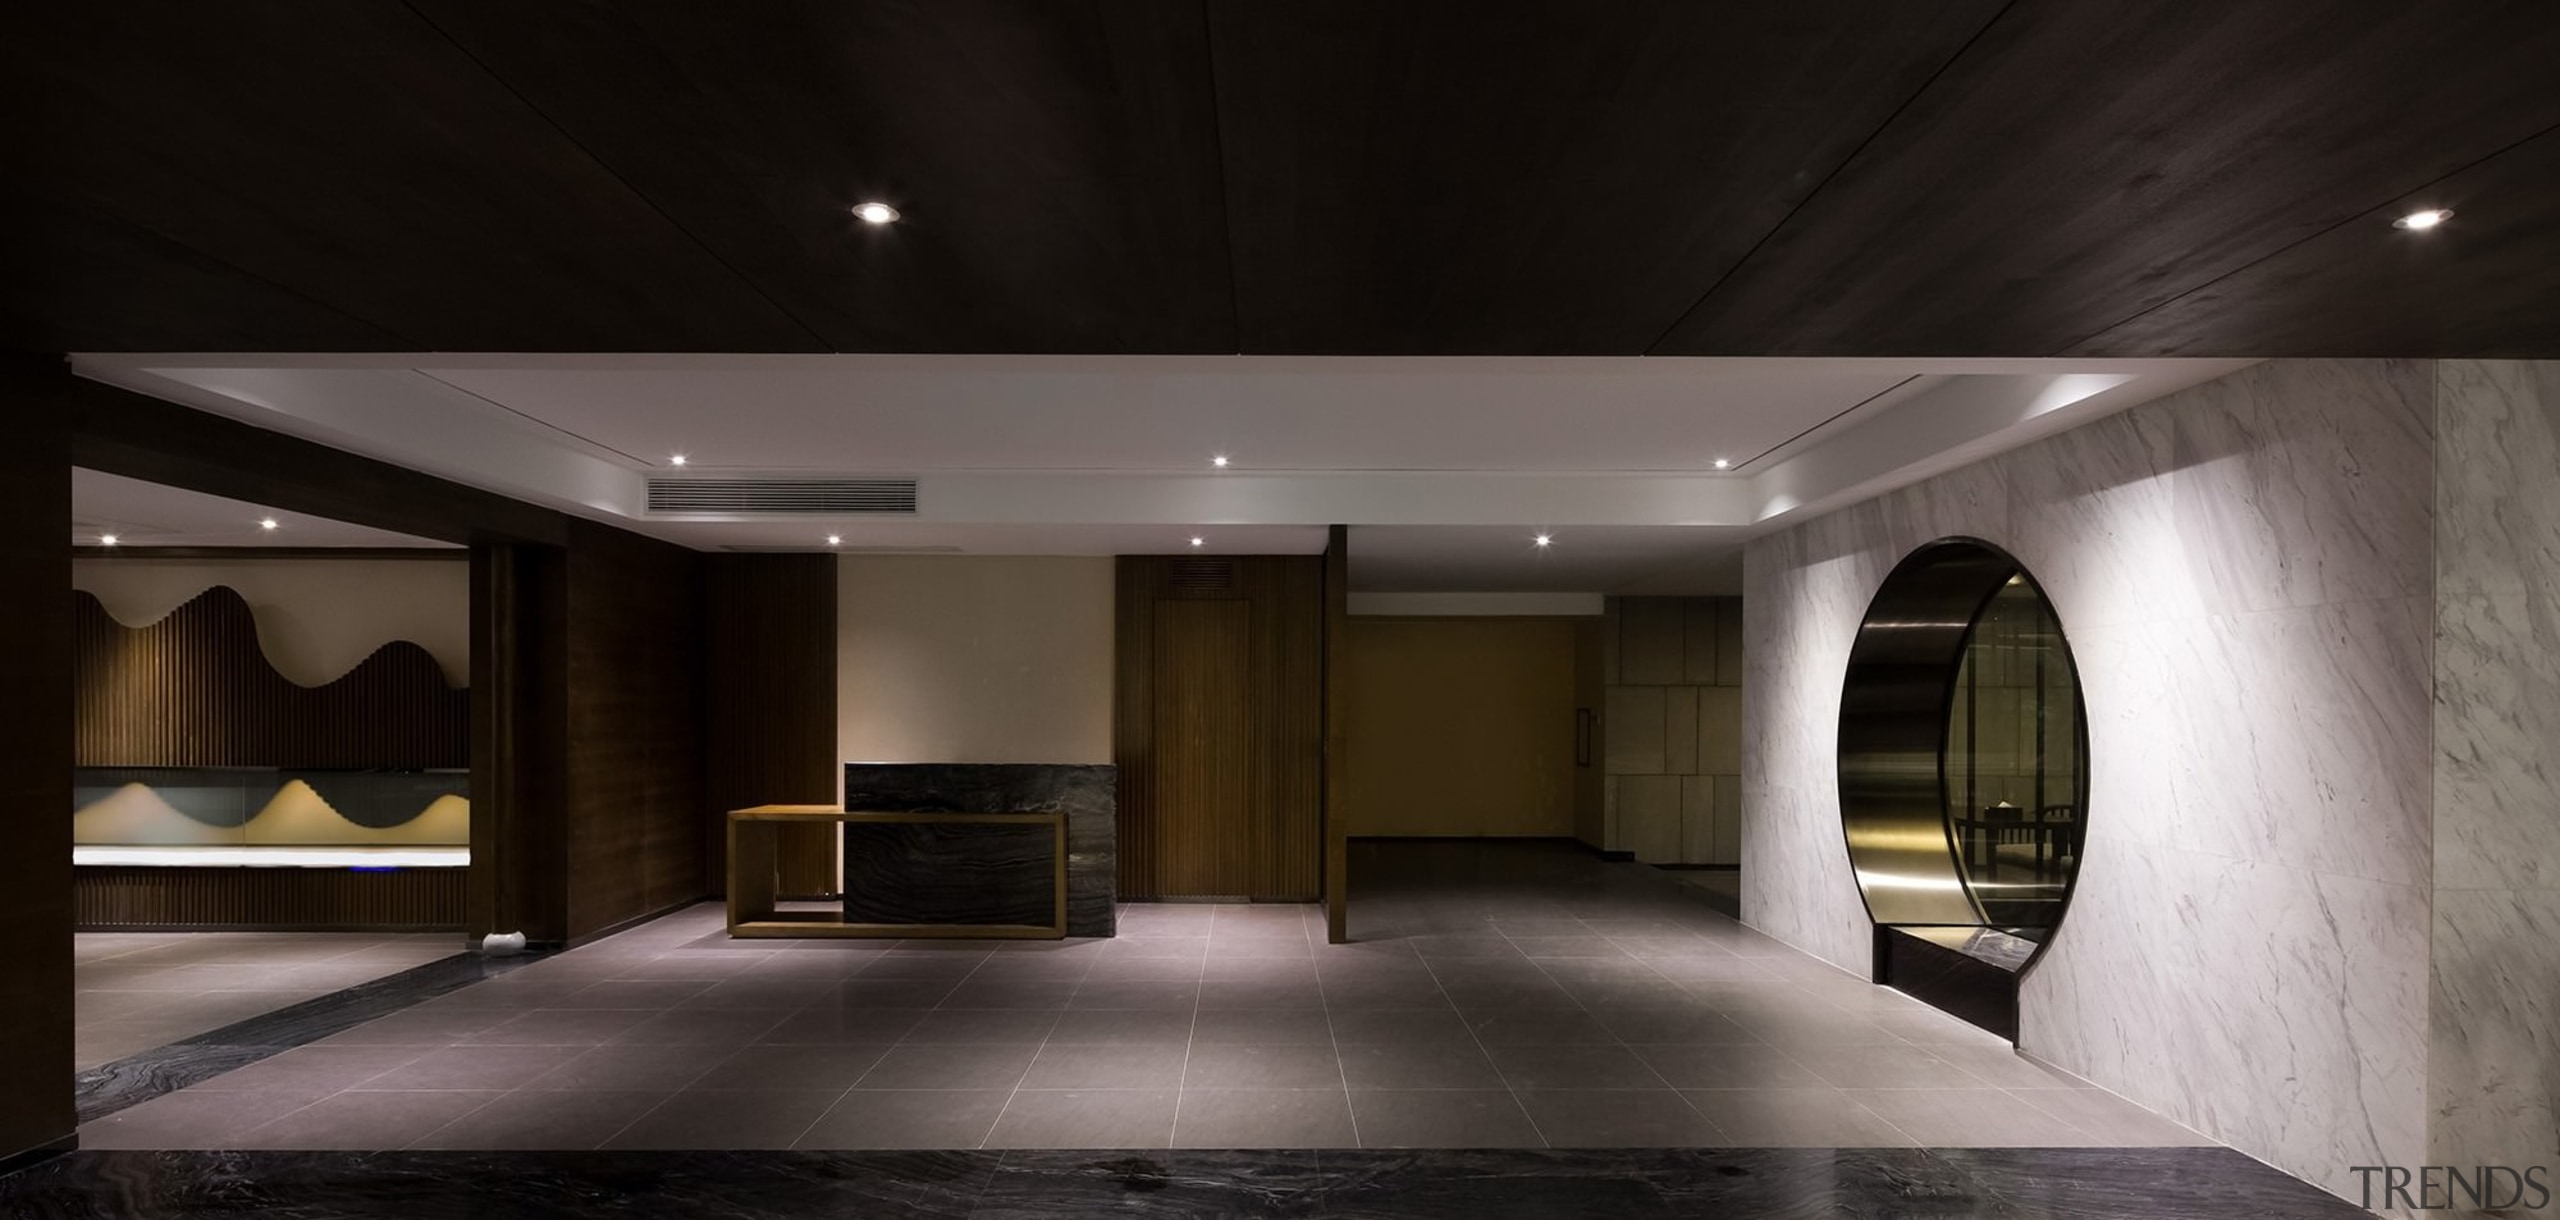 This circular doorway leads you through to the architecture, ceiling, interior design, lighting, lobby, black, gray